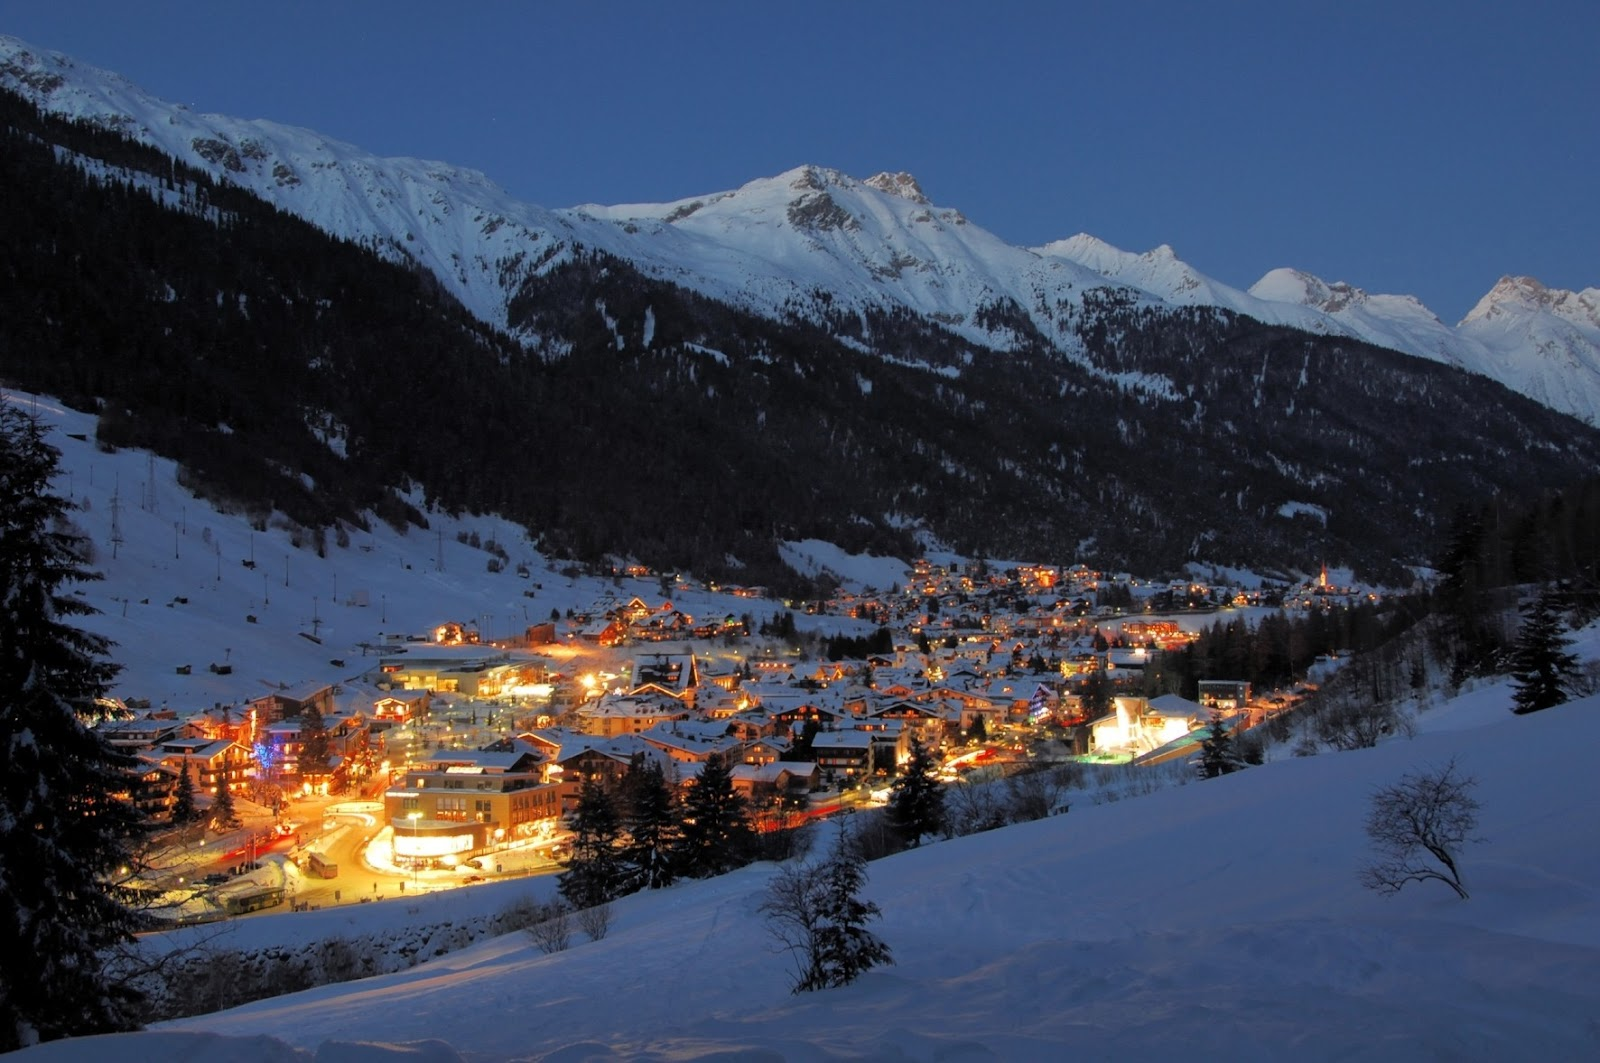 World___Austria_Shining_City_in_the_ski_resort_of_St._Anton__Austria_070329_.jpg